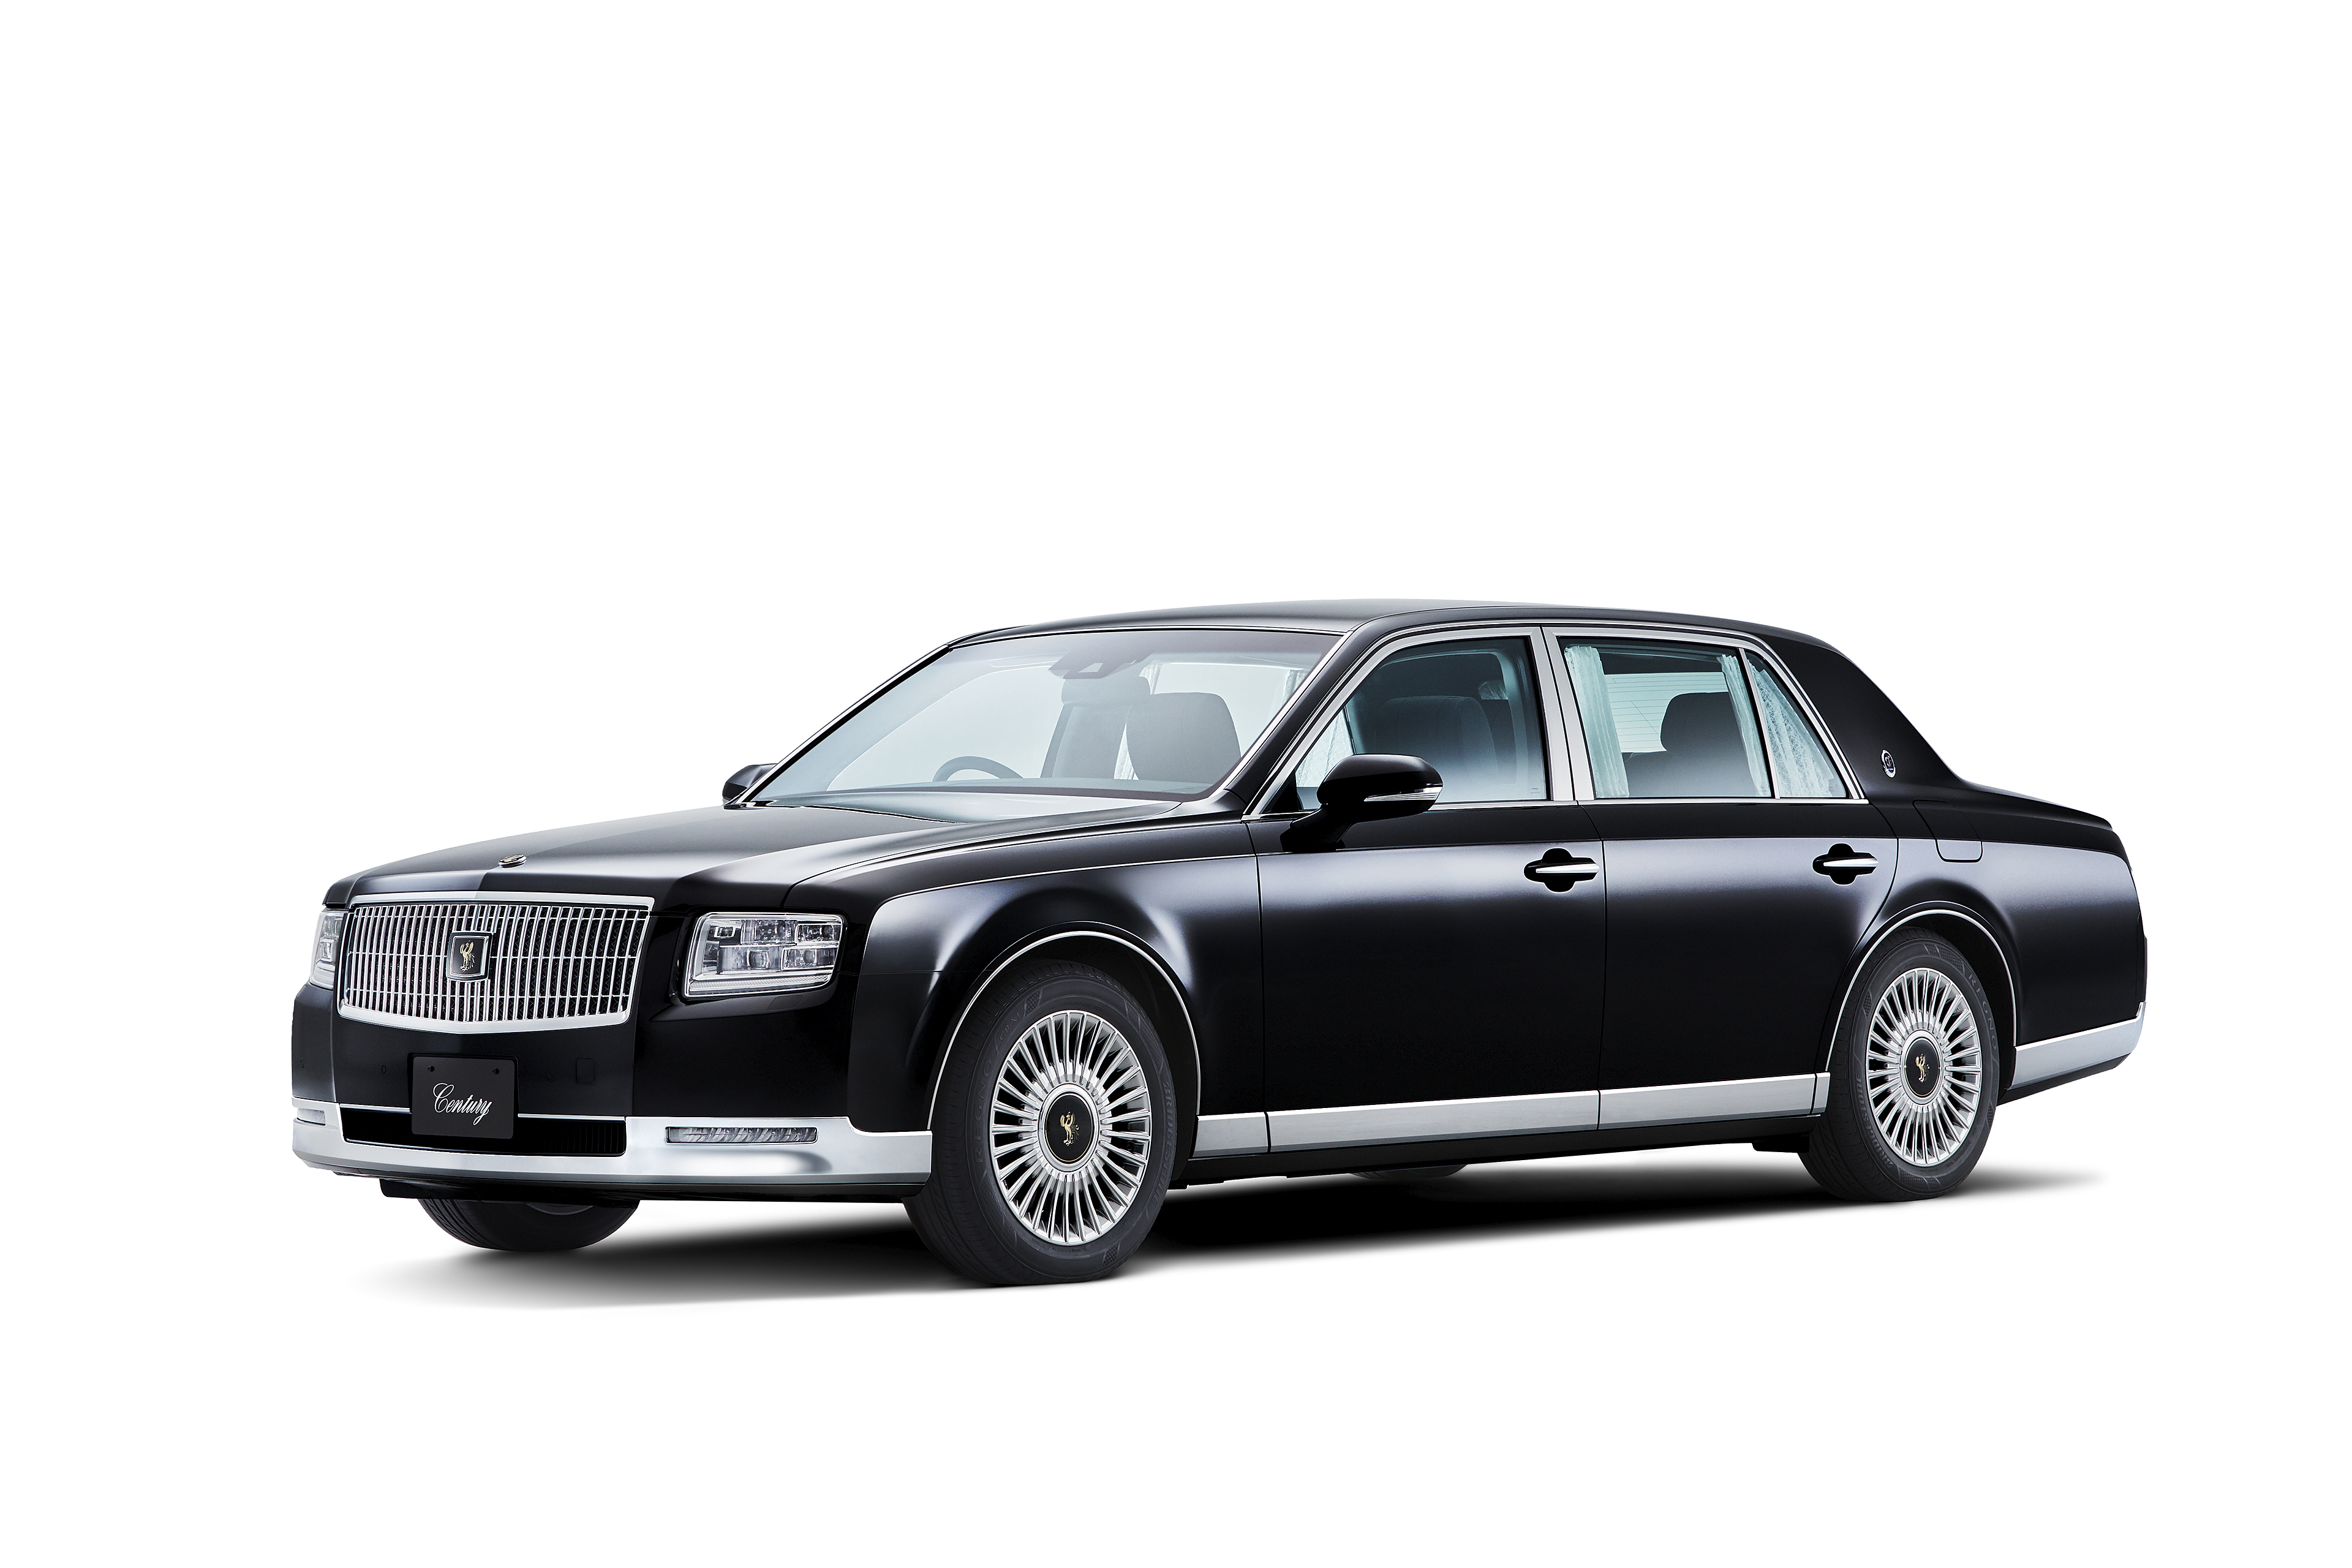 The Toyota Century is brilliant - but unlikely to make it to the UK